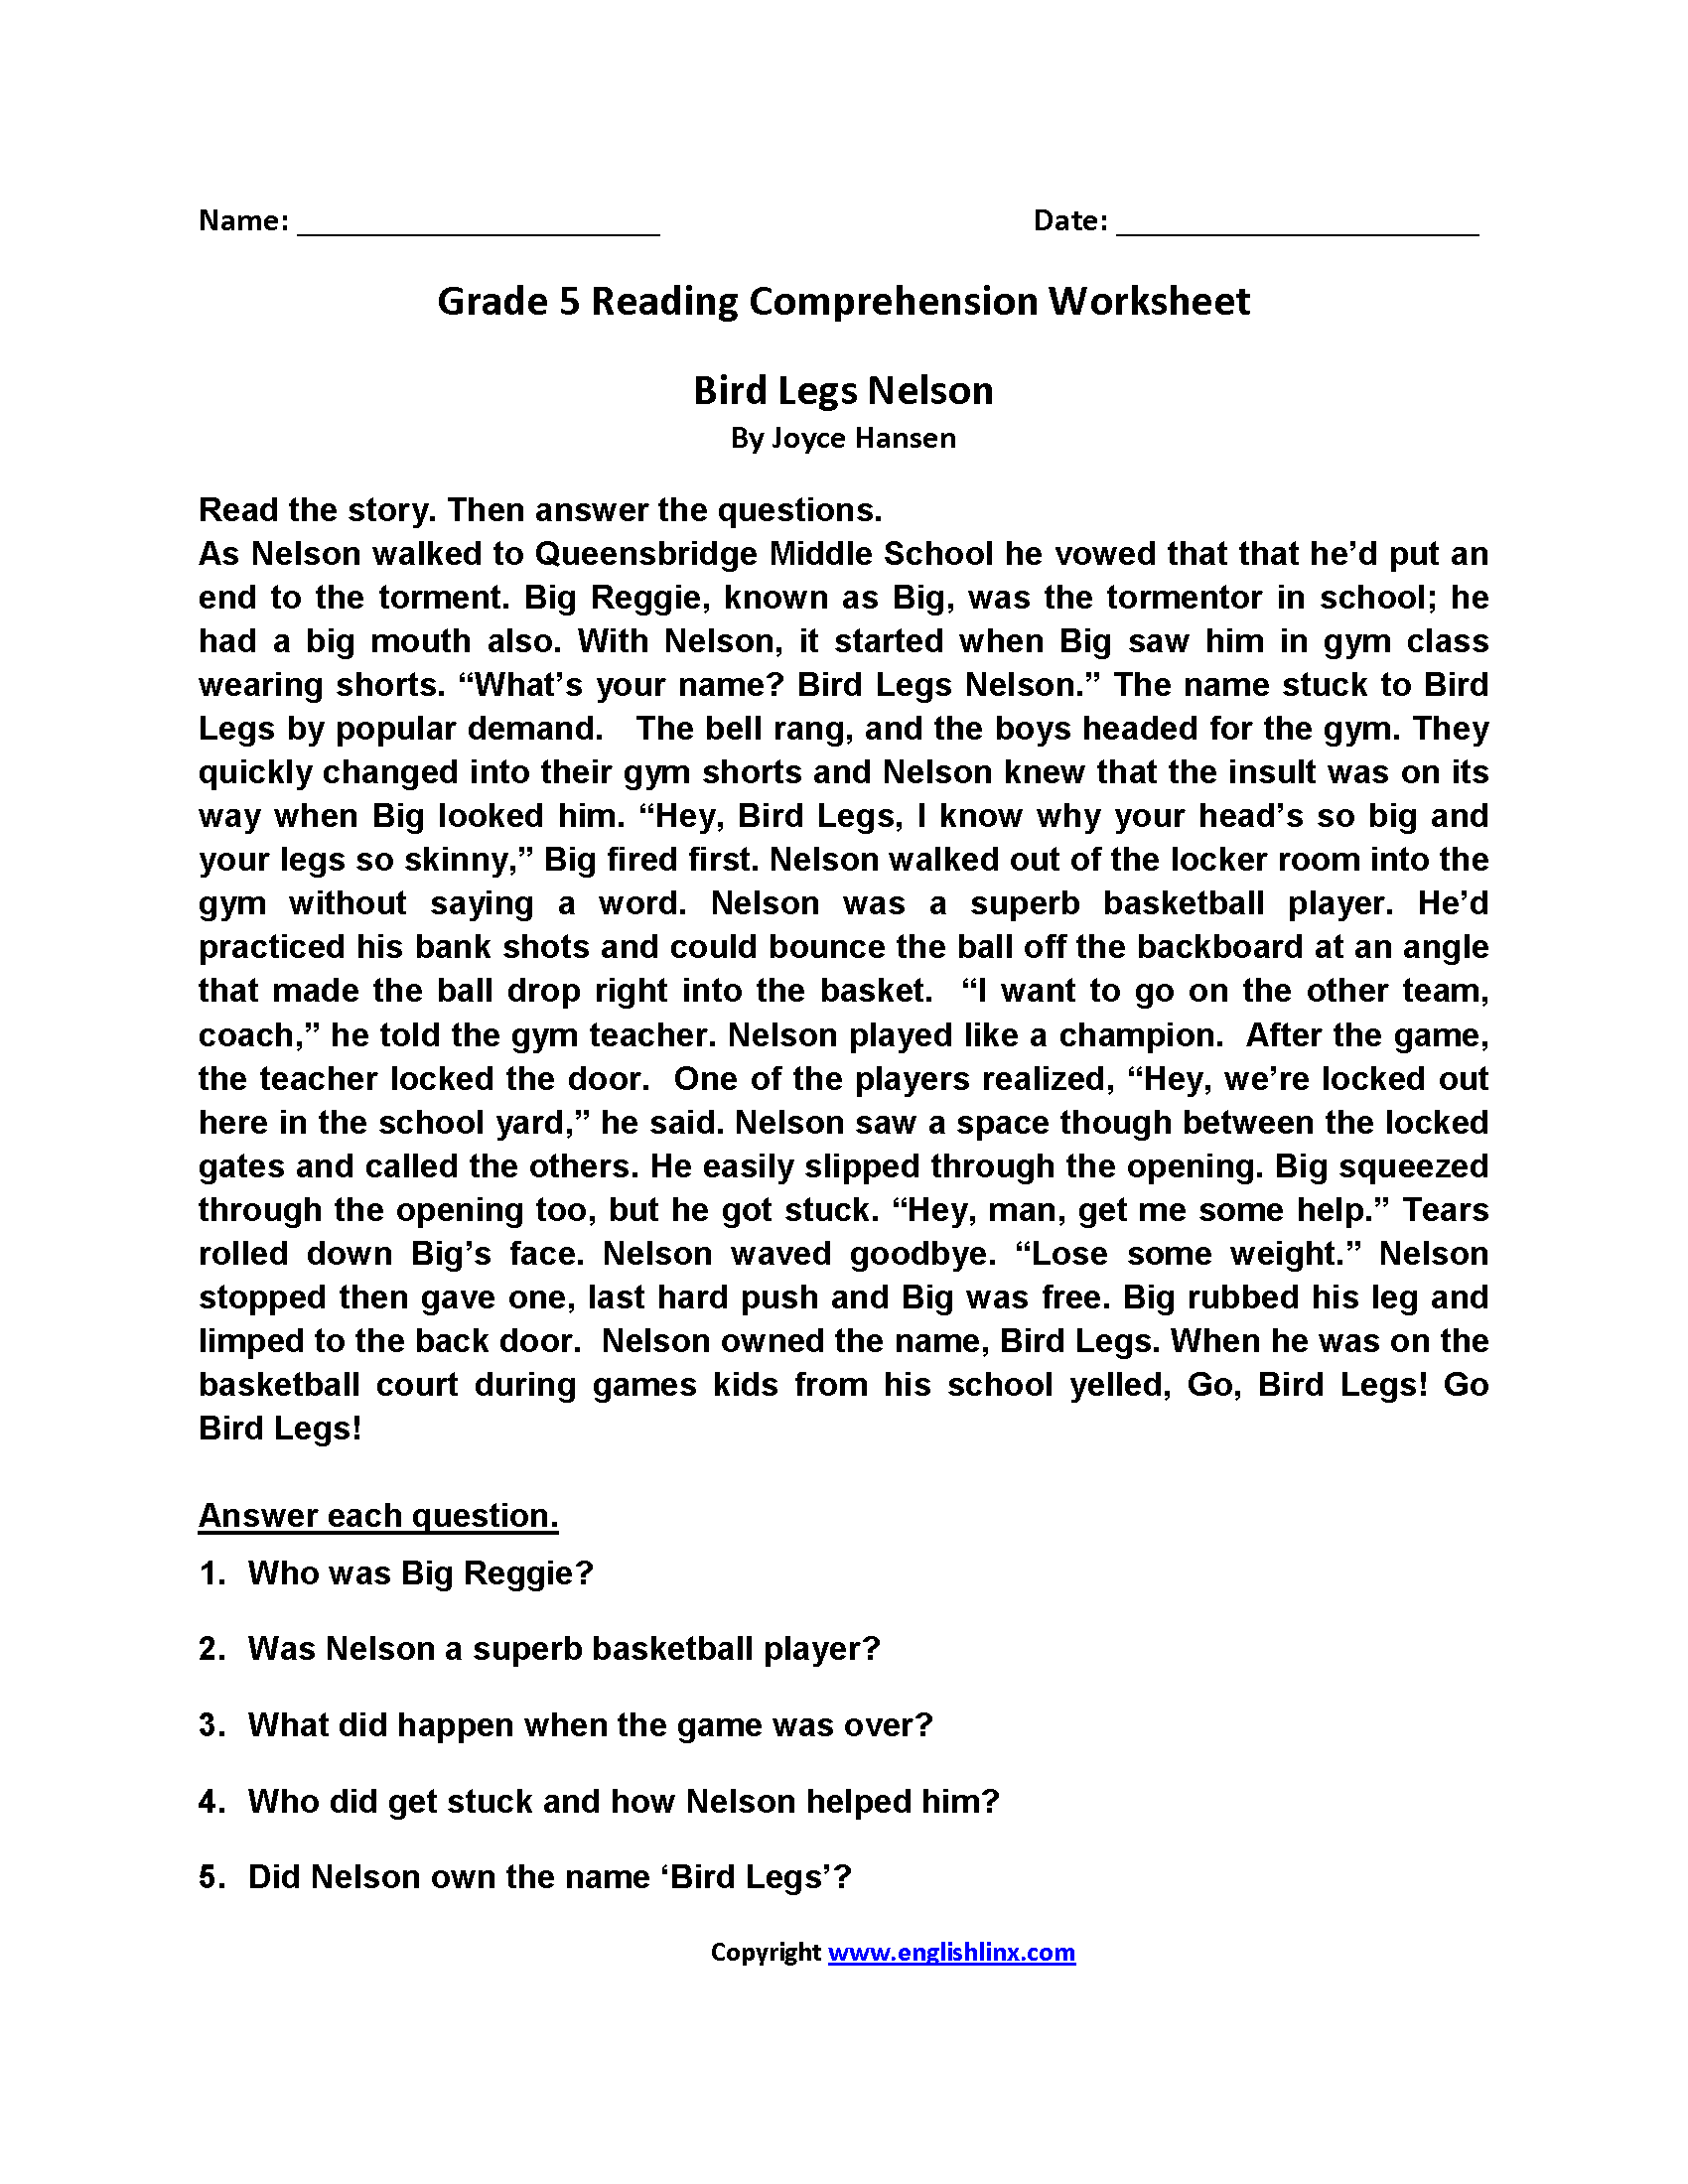 Worksheets 5th Grade Worksheets Reading reading worksheets for 3rd grade 1happywallpapers high definition free wallpapers backgrounds